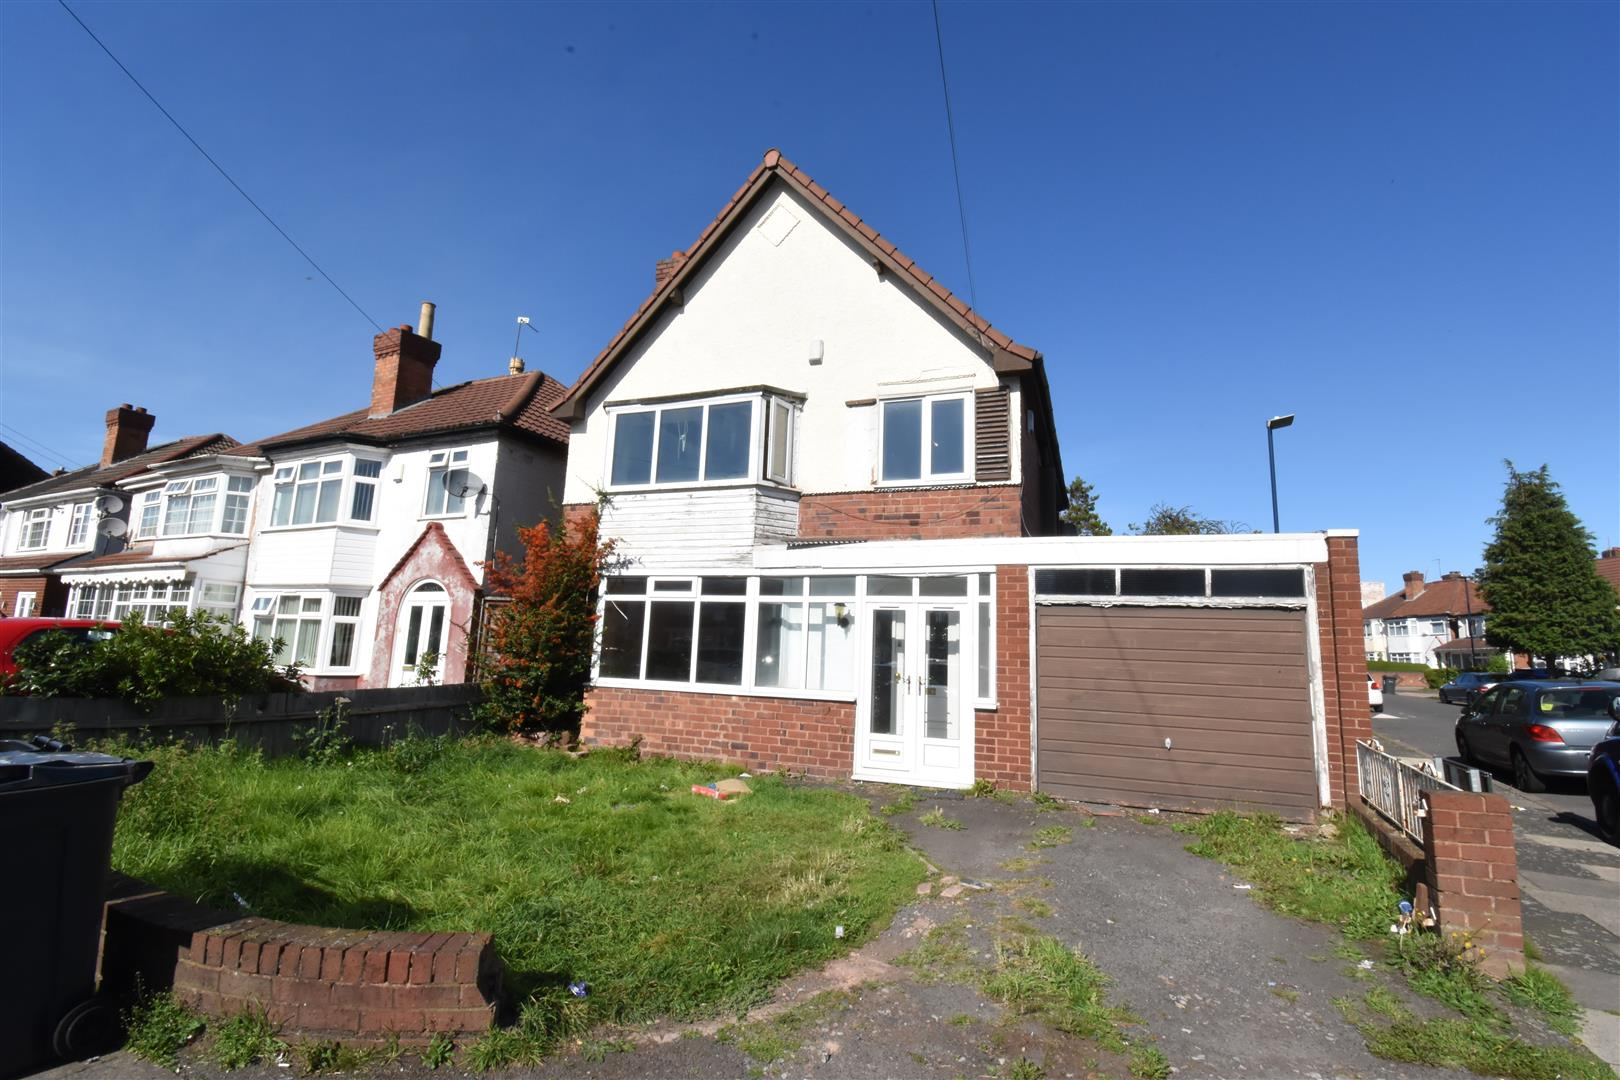 3 bed house for sale in Woodwells Road, Ward End, BIRMINGHAM, B8